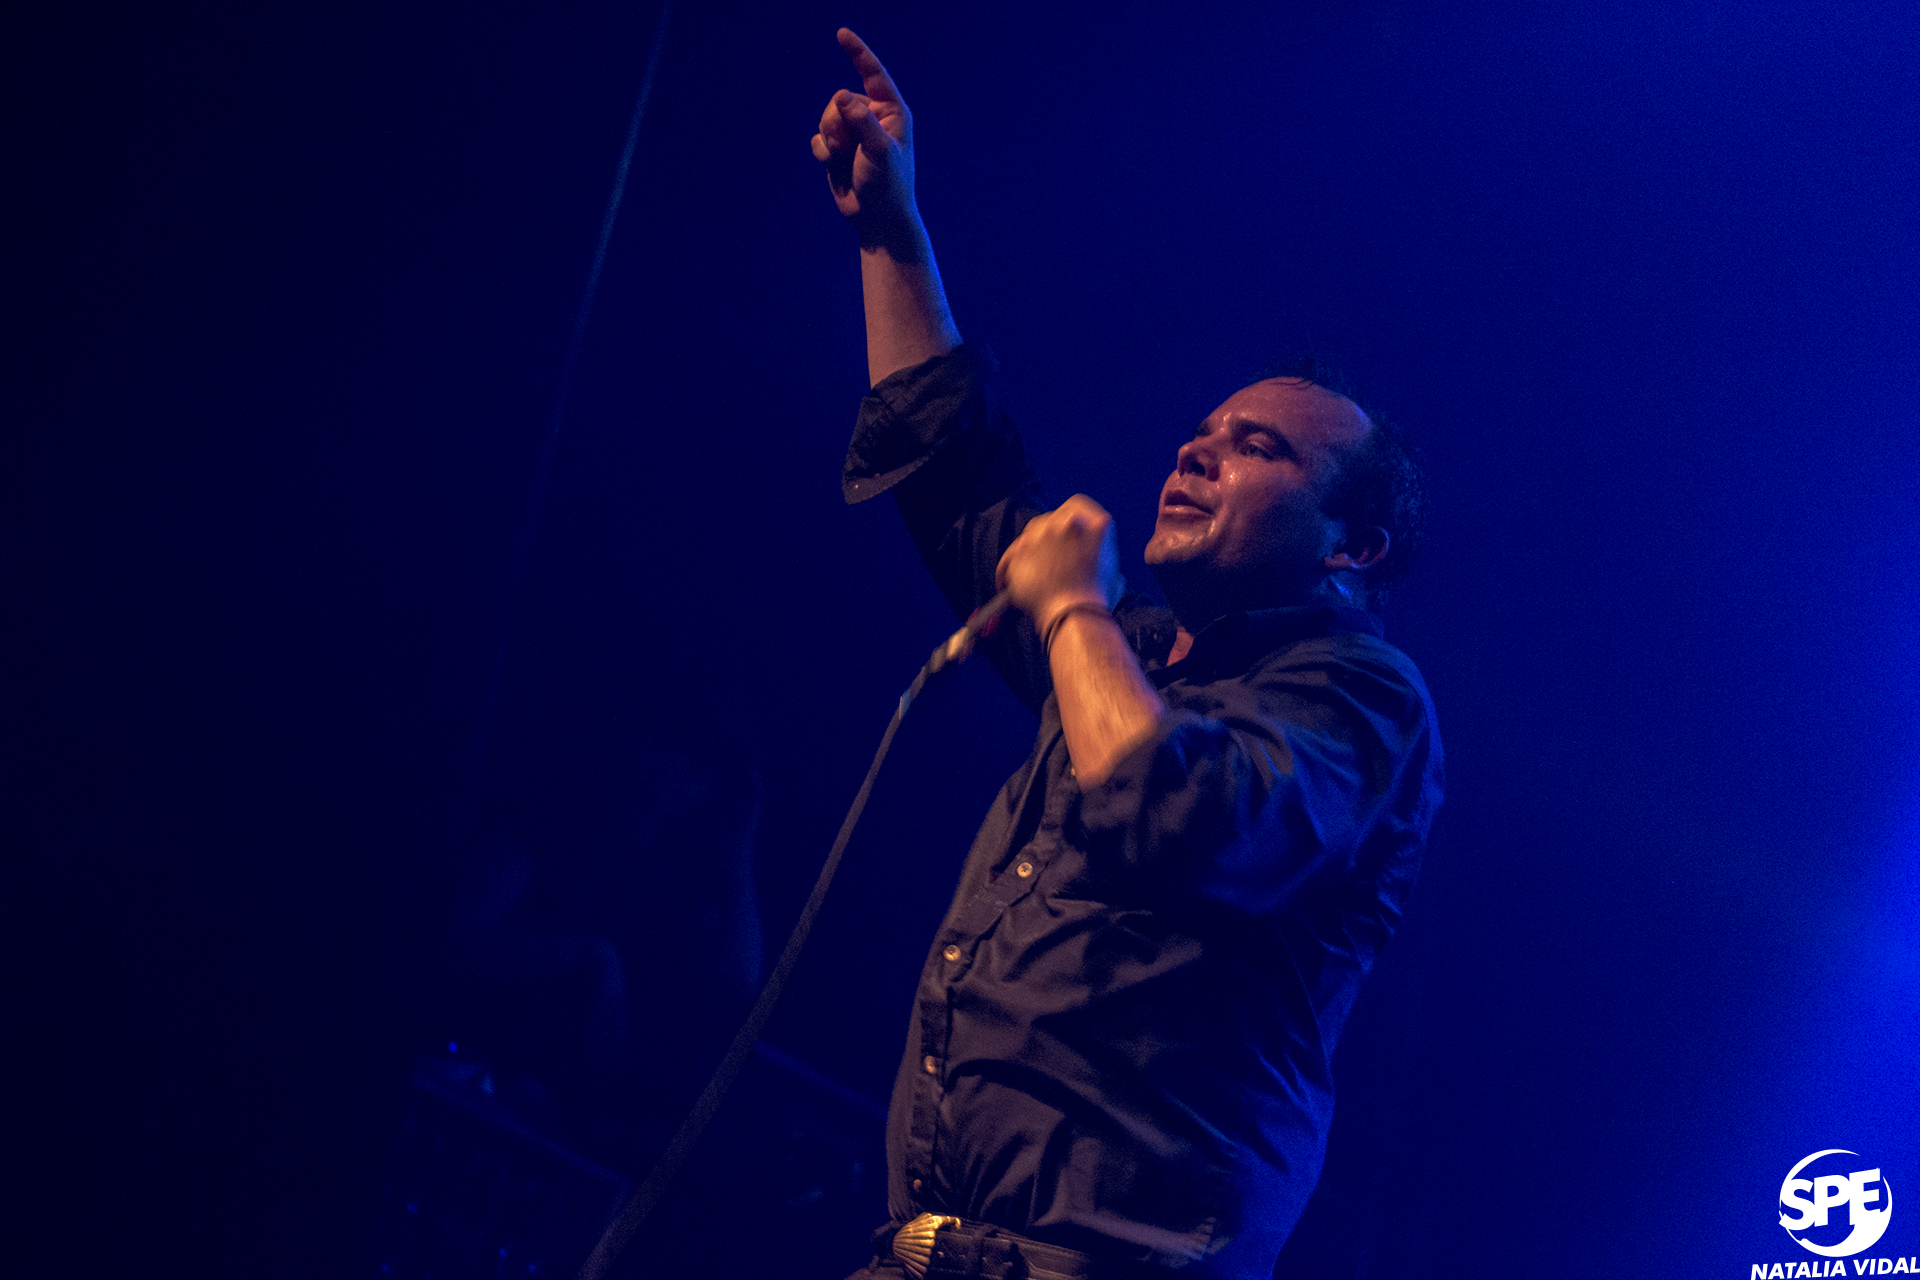 Future-Islands-Walkman-Vol1-Niceto-09-05-18-Natalia-Vidal-Solo-Para-Entendidos_1030.jpg